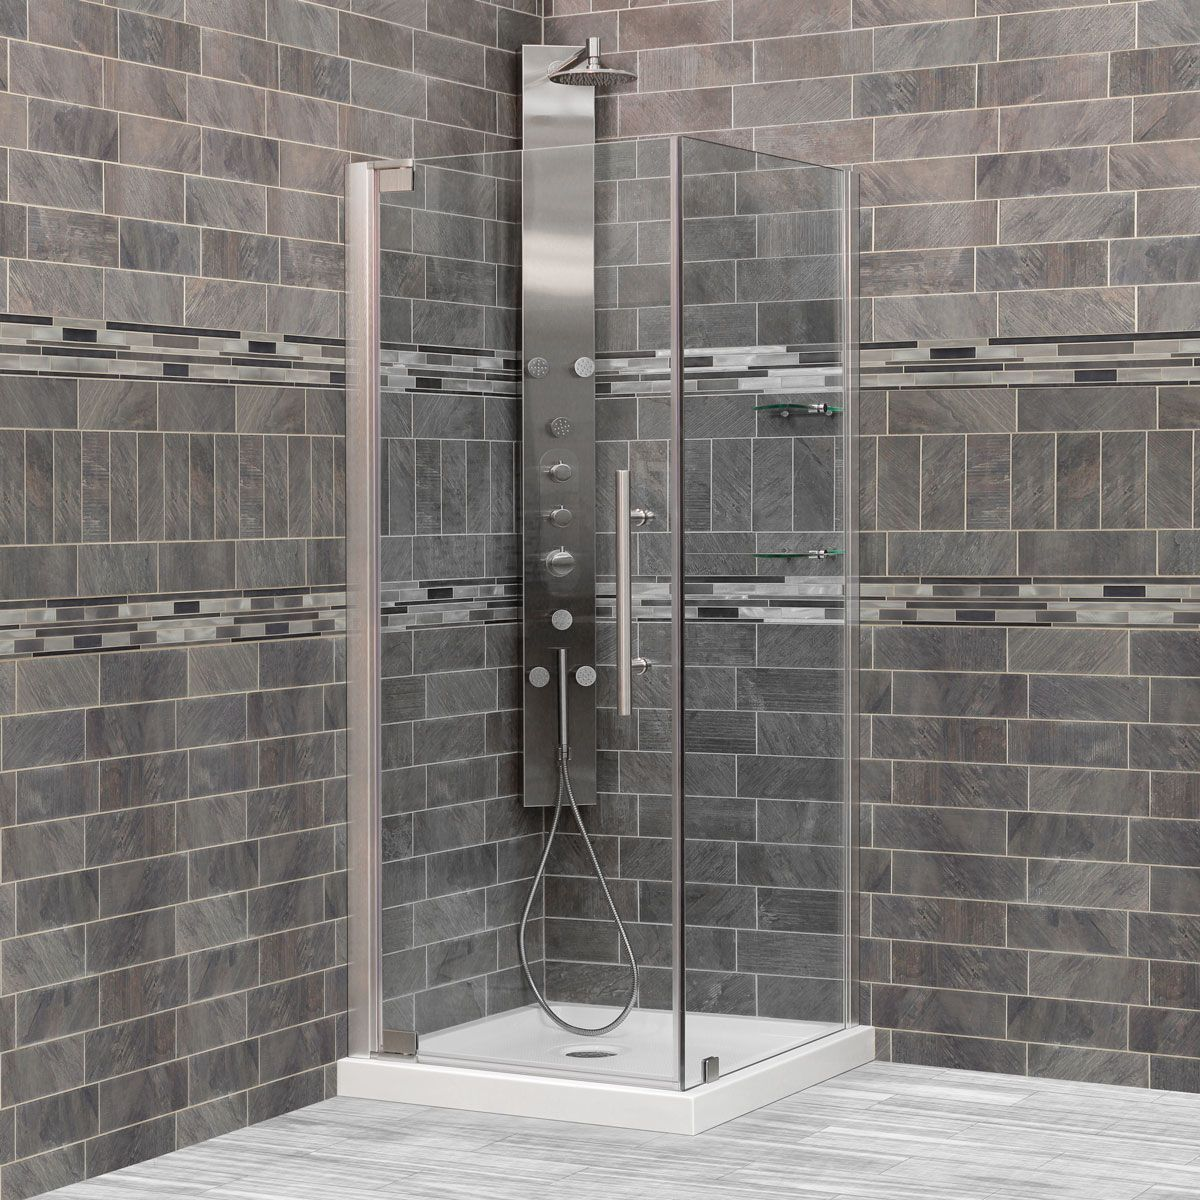 Lesscare Brushed Nickel Ultra G 34 3 8 35w X 72h Pivot Swing Out Shower Door With Enclosure Panel